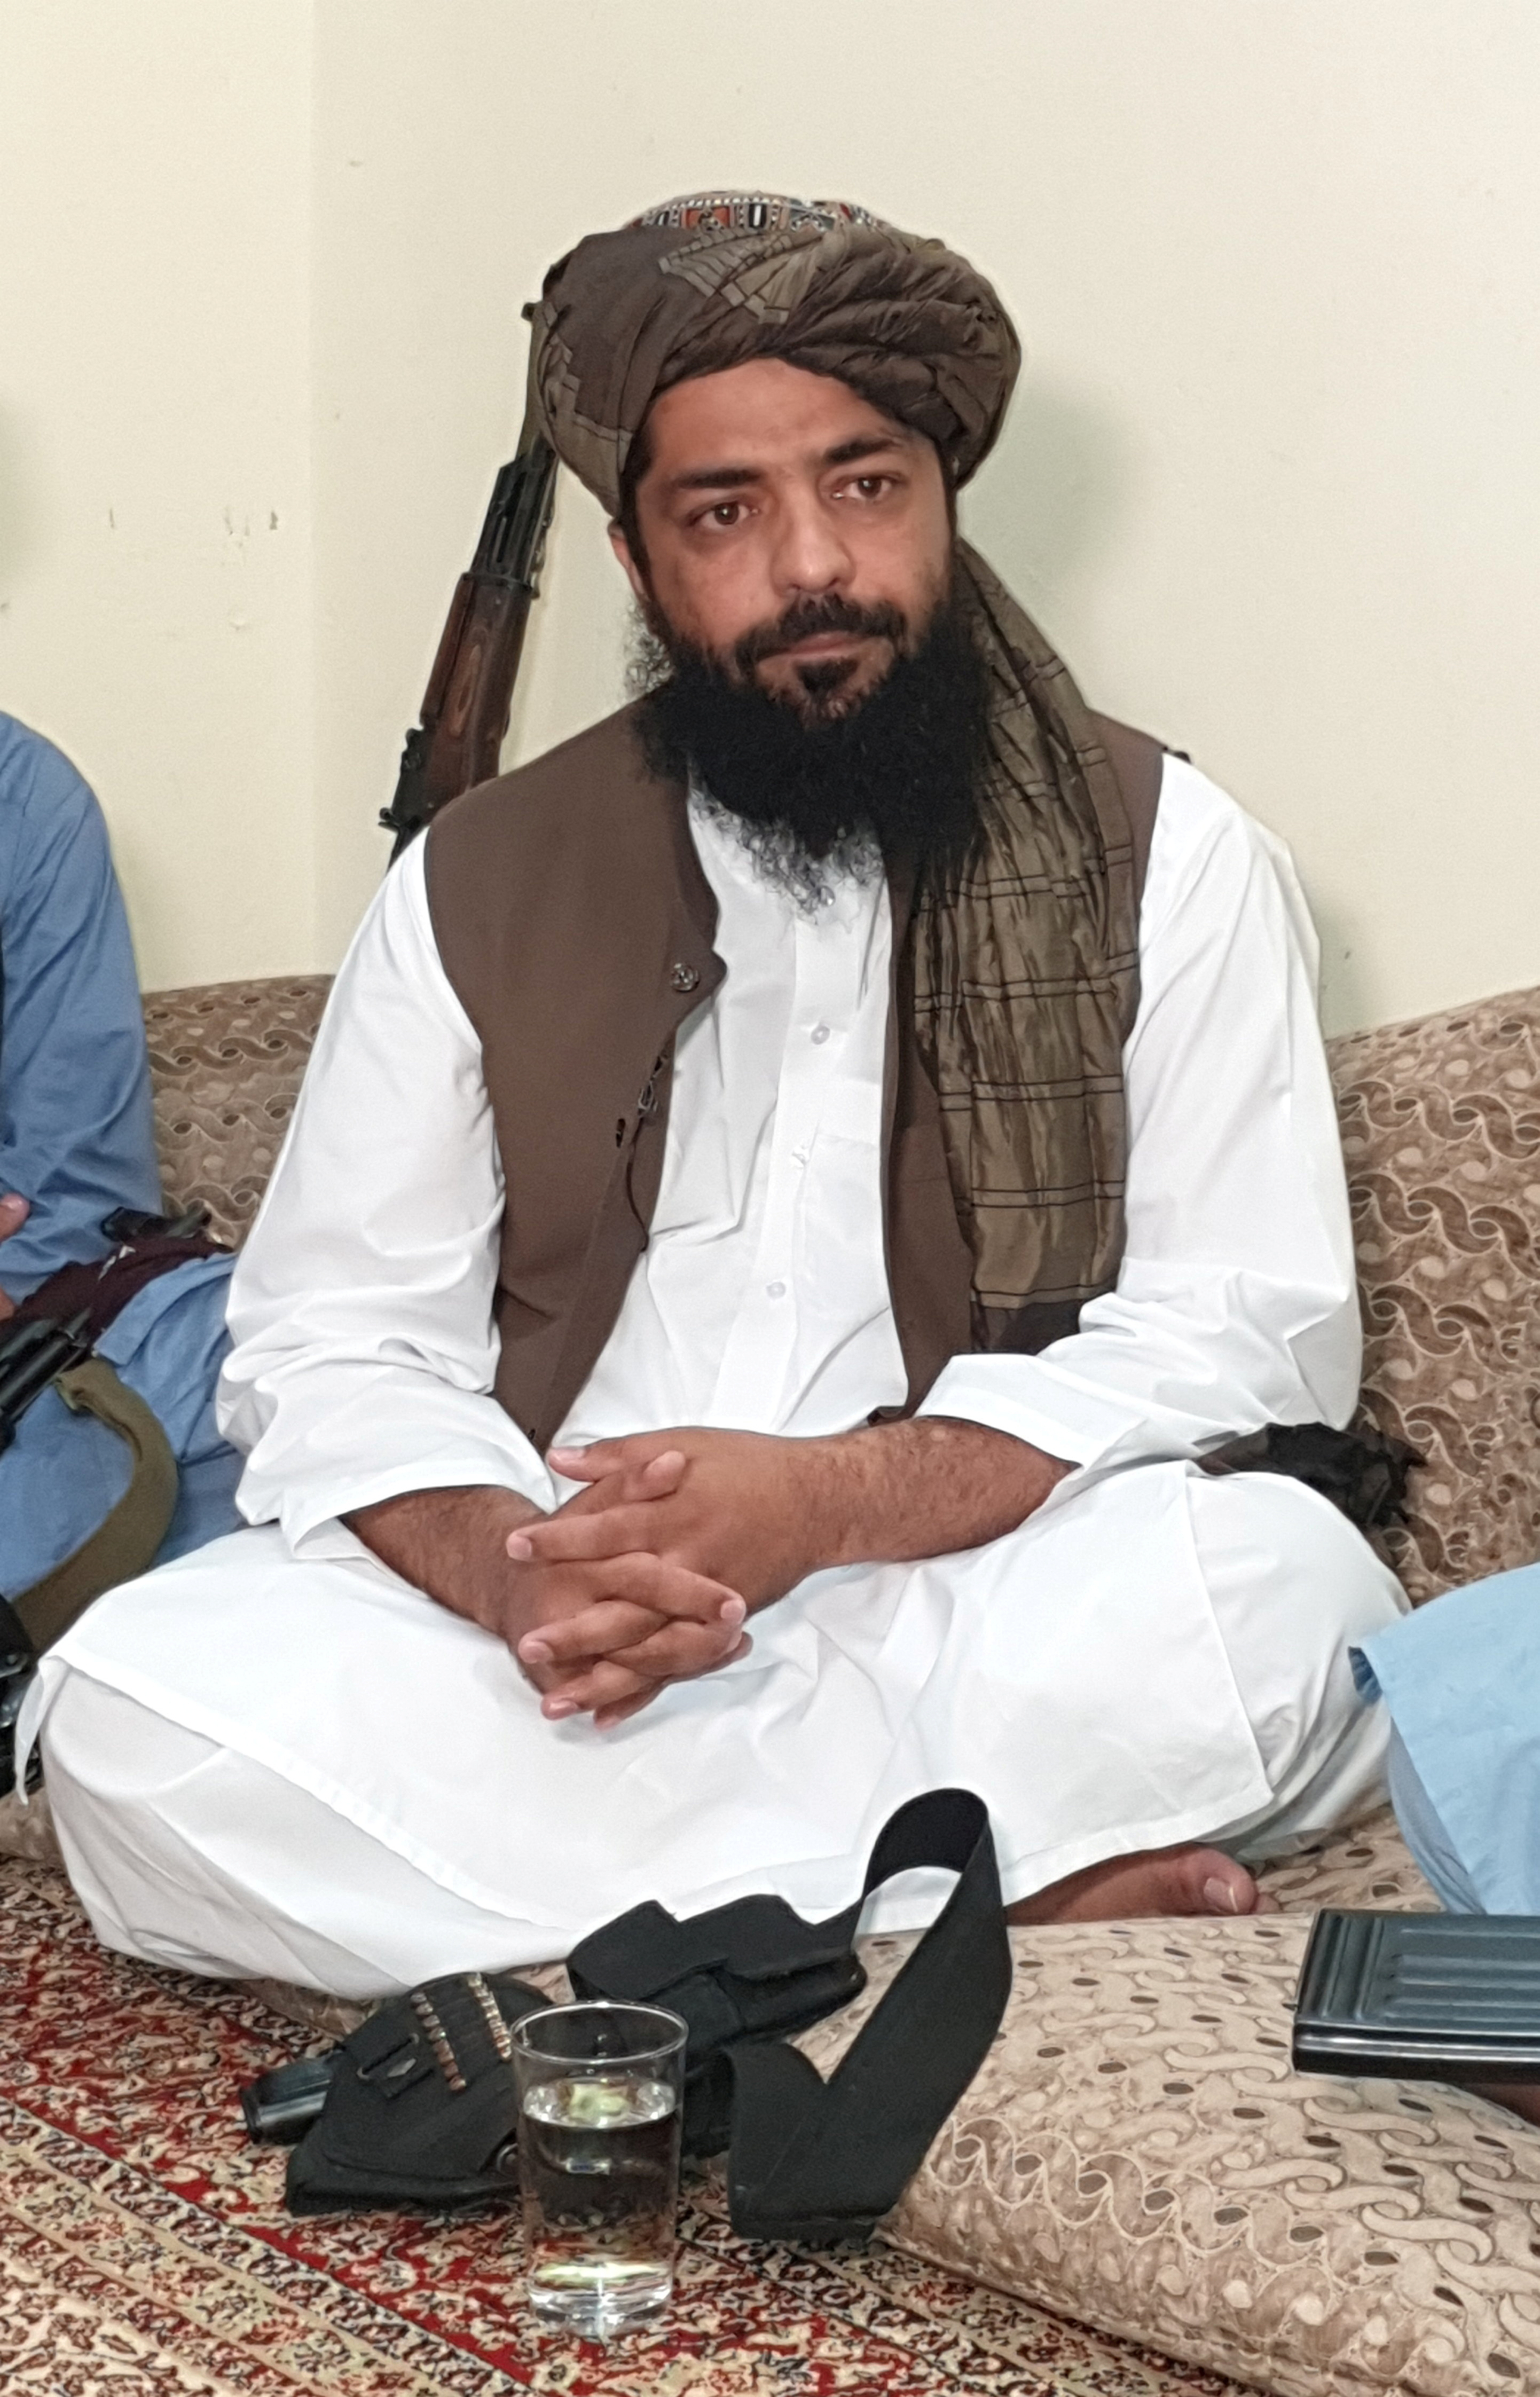 Waheedullah Hashimi, a senior Taliban commander, pauses while speaking with Reuters during an interview at an undisclosed location near Afghanistan-Pakistan border August 17, 2021. Picture taken August 17, 2021. REUTERS/Stringer